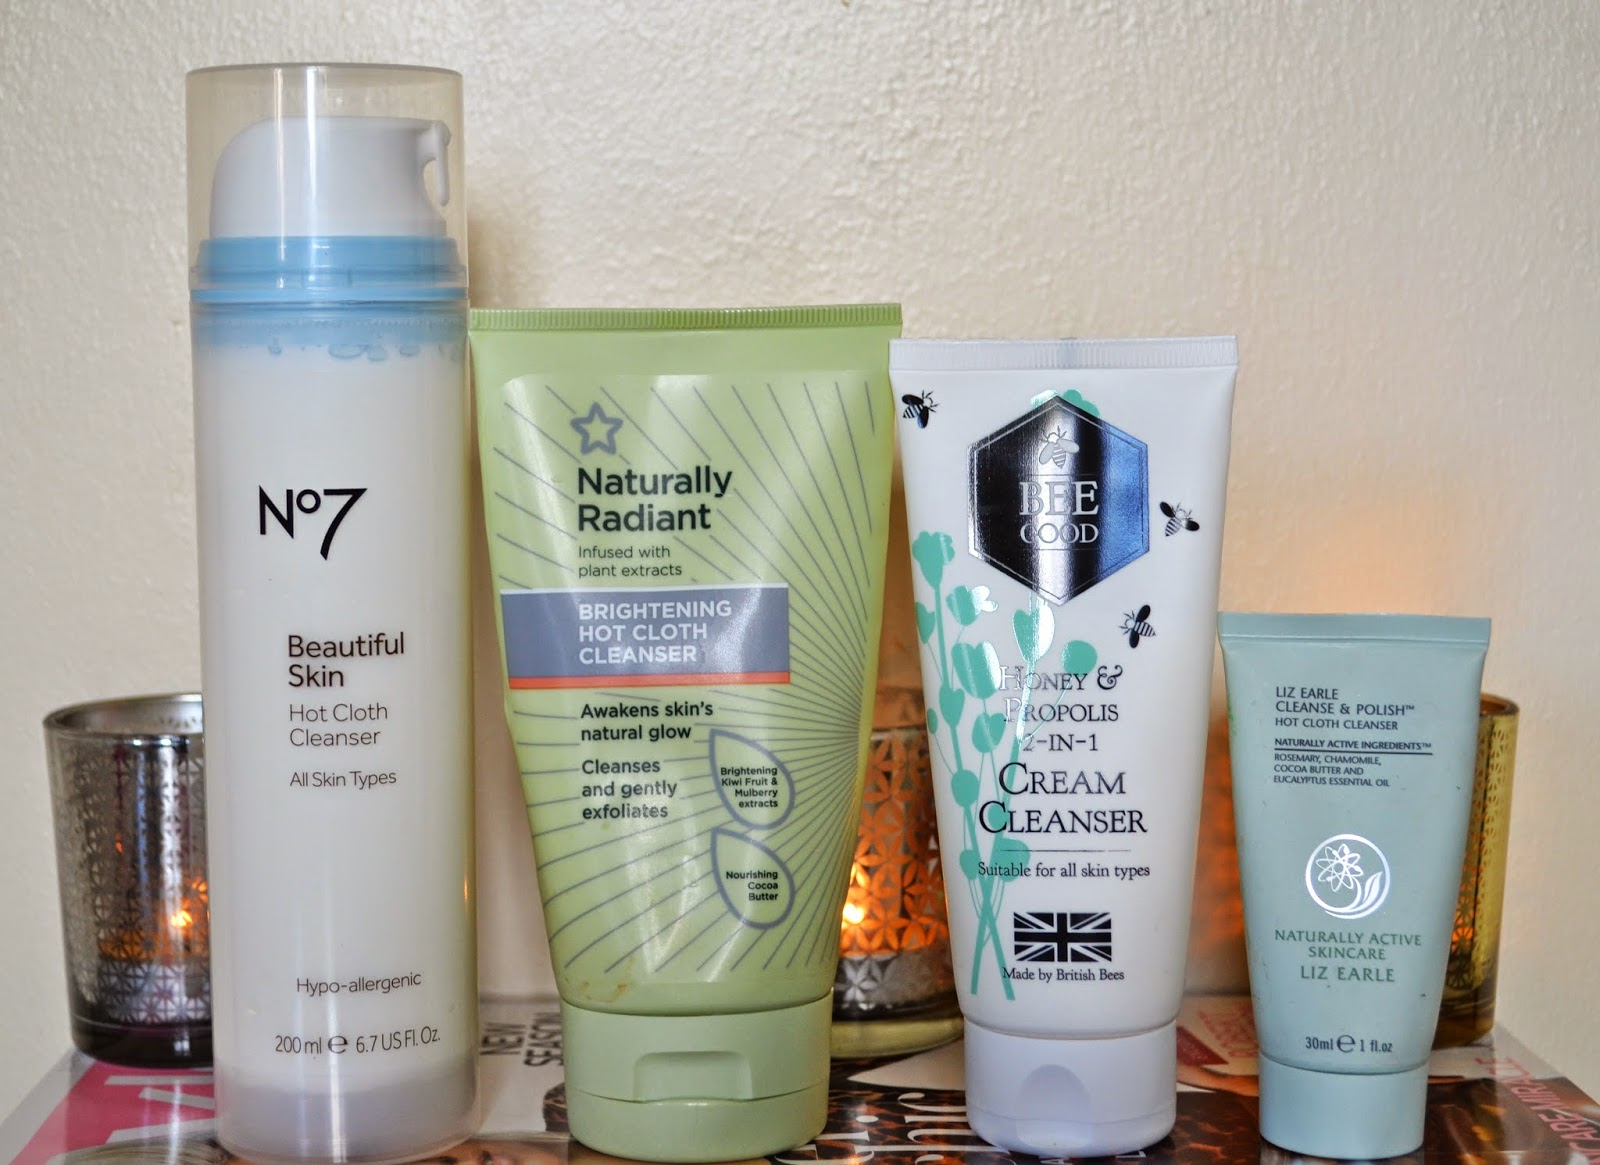 Hot Cloth Cleansers - Boots No7 Beautiful Skin, Superdrug Naturally Radiant, Bee Good Honey & Propolis 2in1, Liz Earle Cleanse & Polish